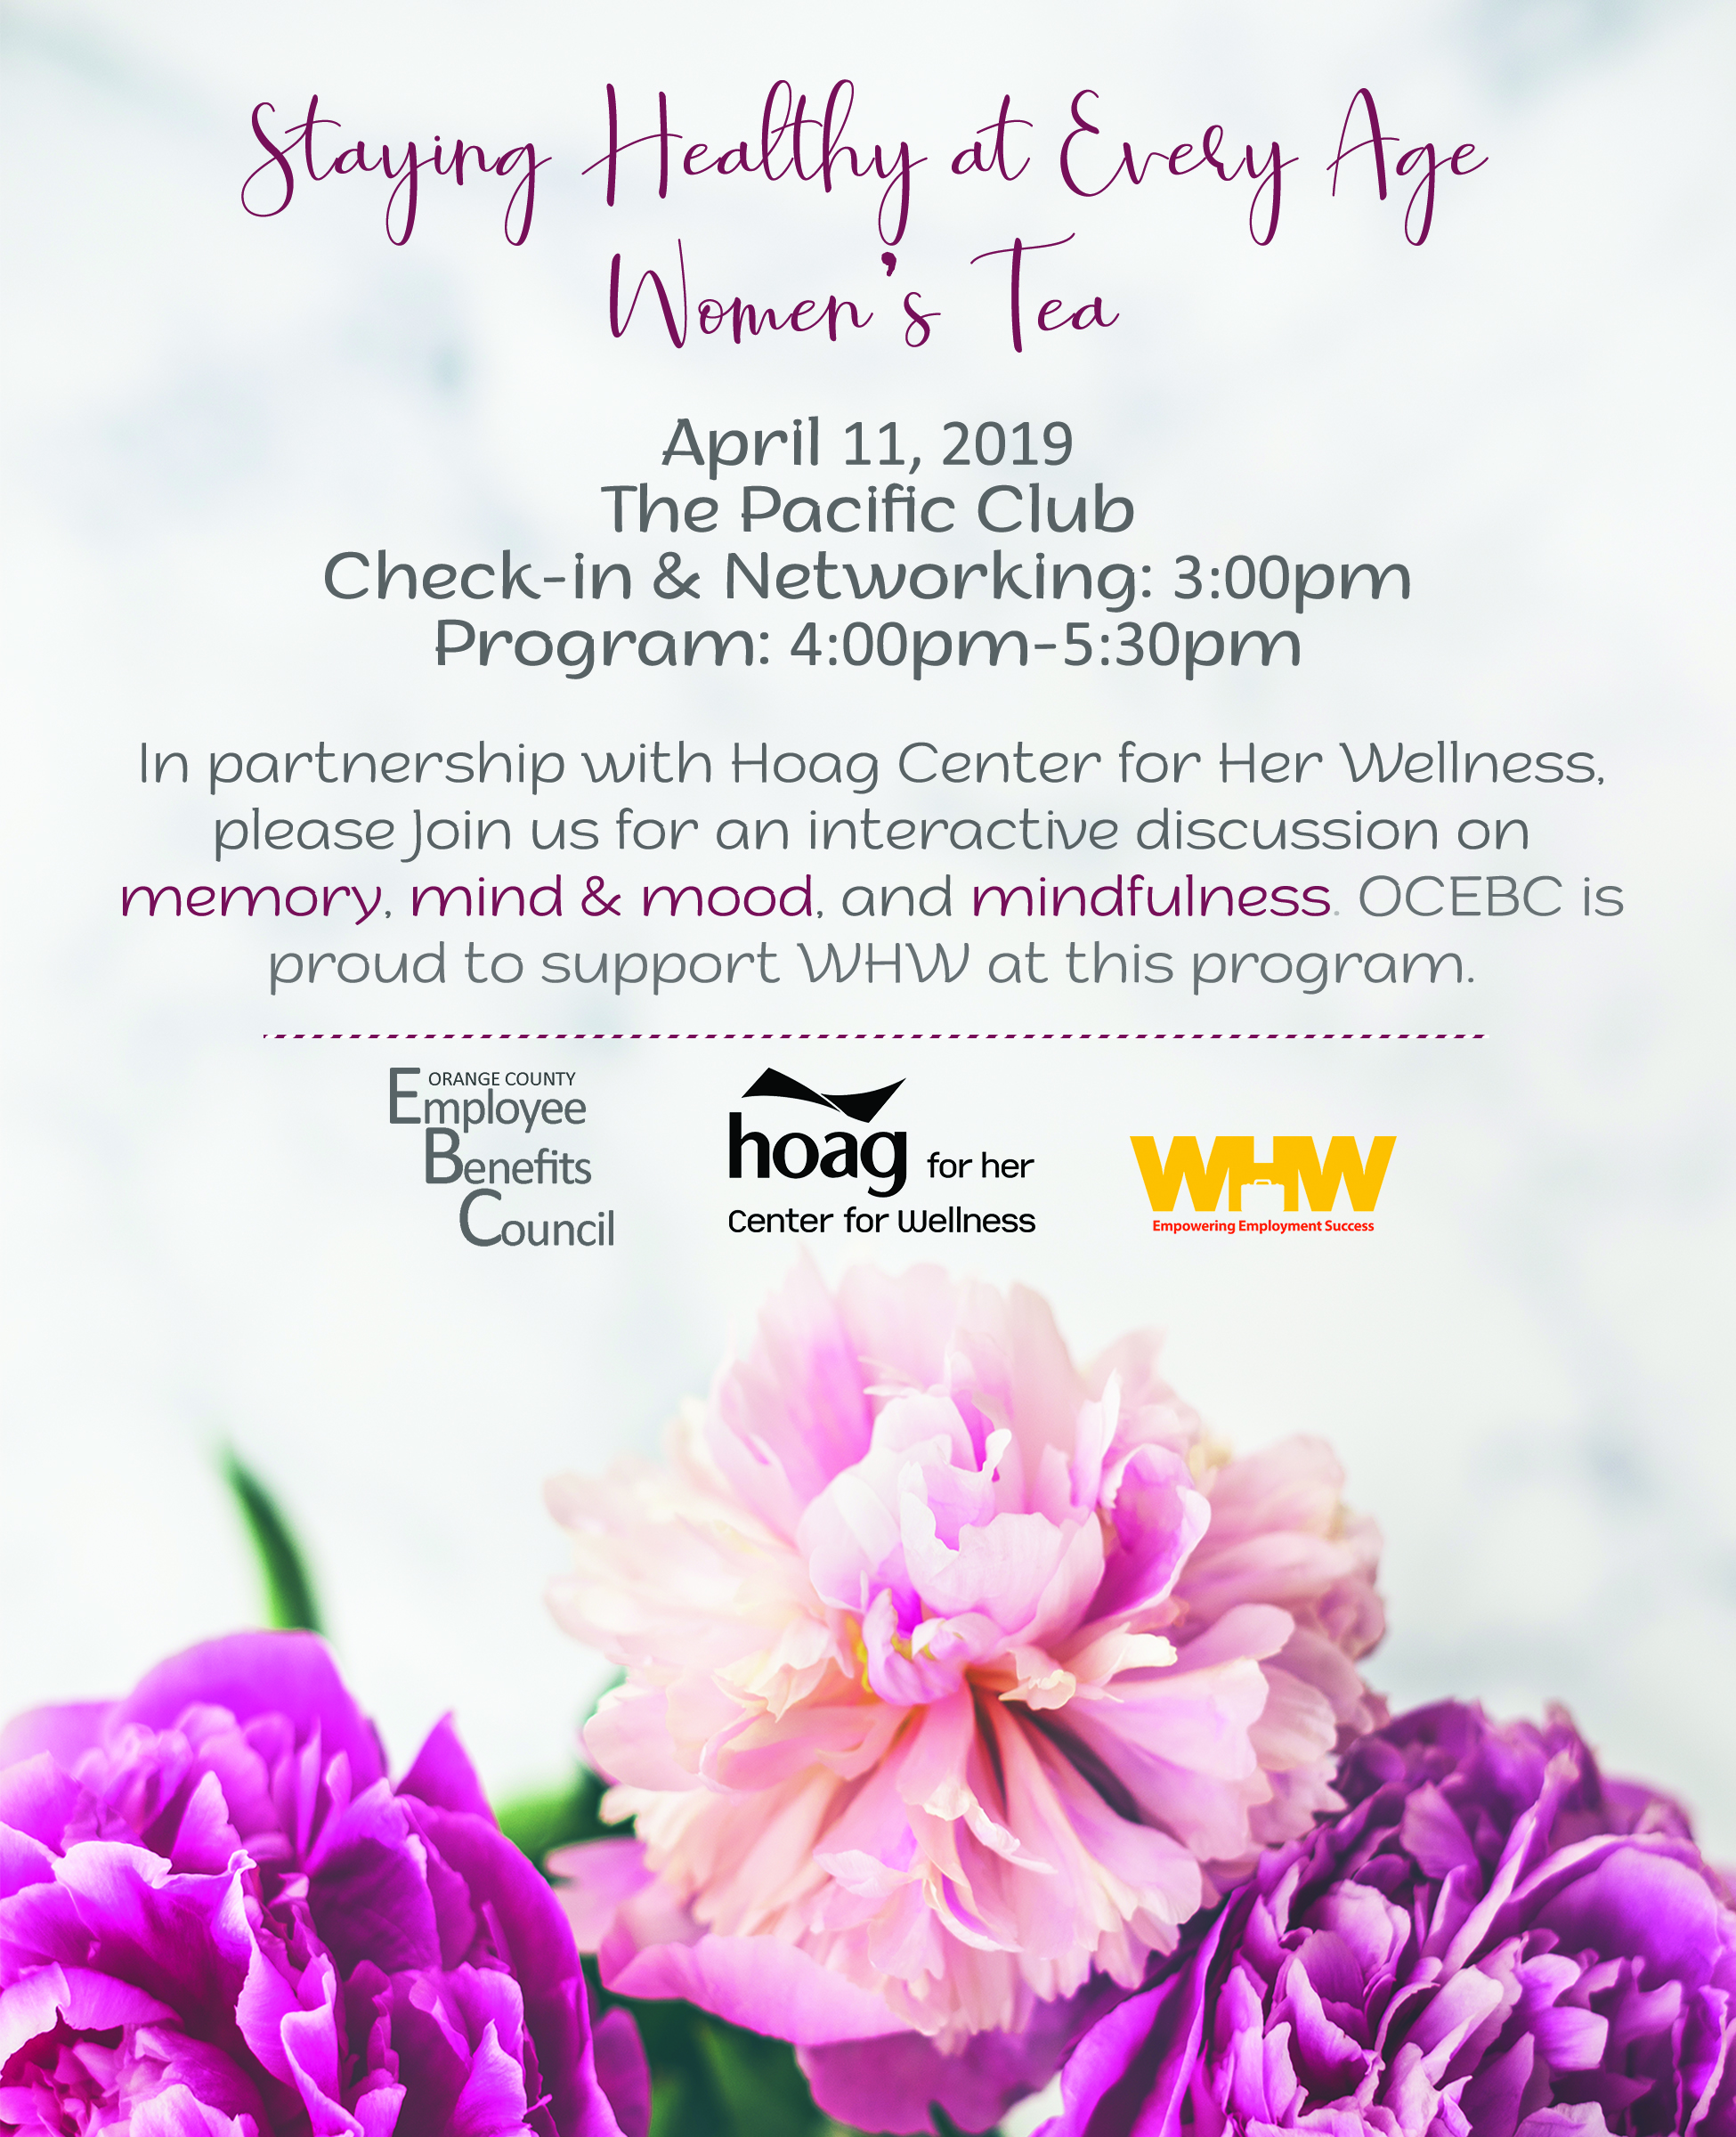 OCEBC 3rd Annual Staying Healthy at Every Age Women's Tea @ The Pacific Club